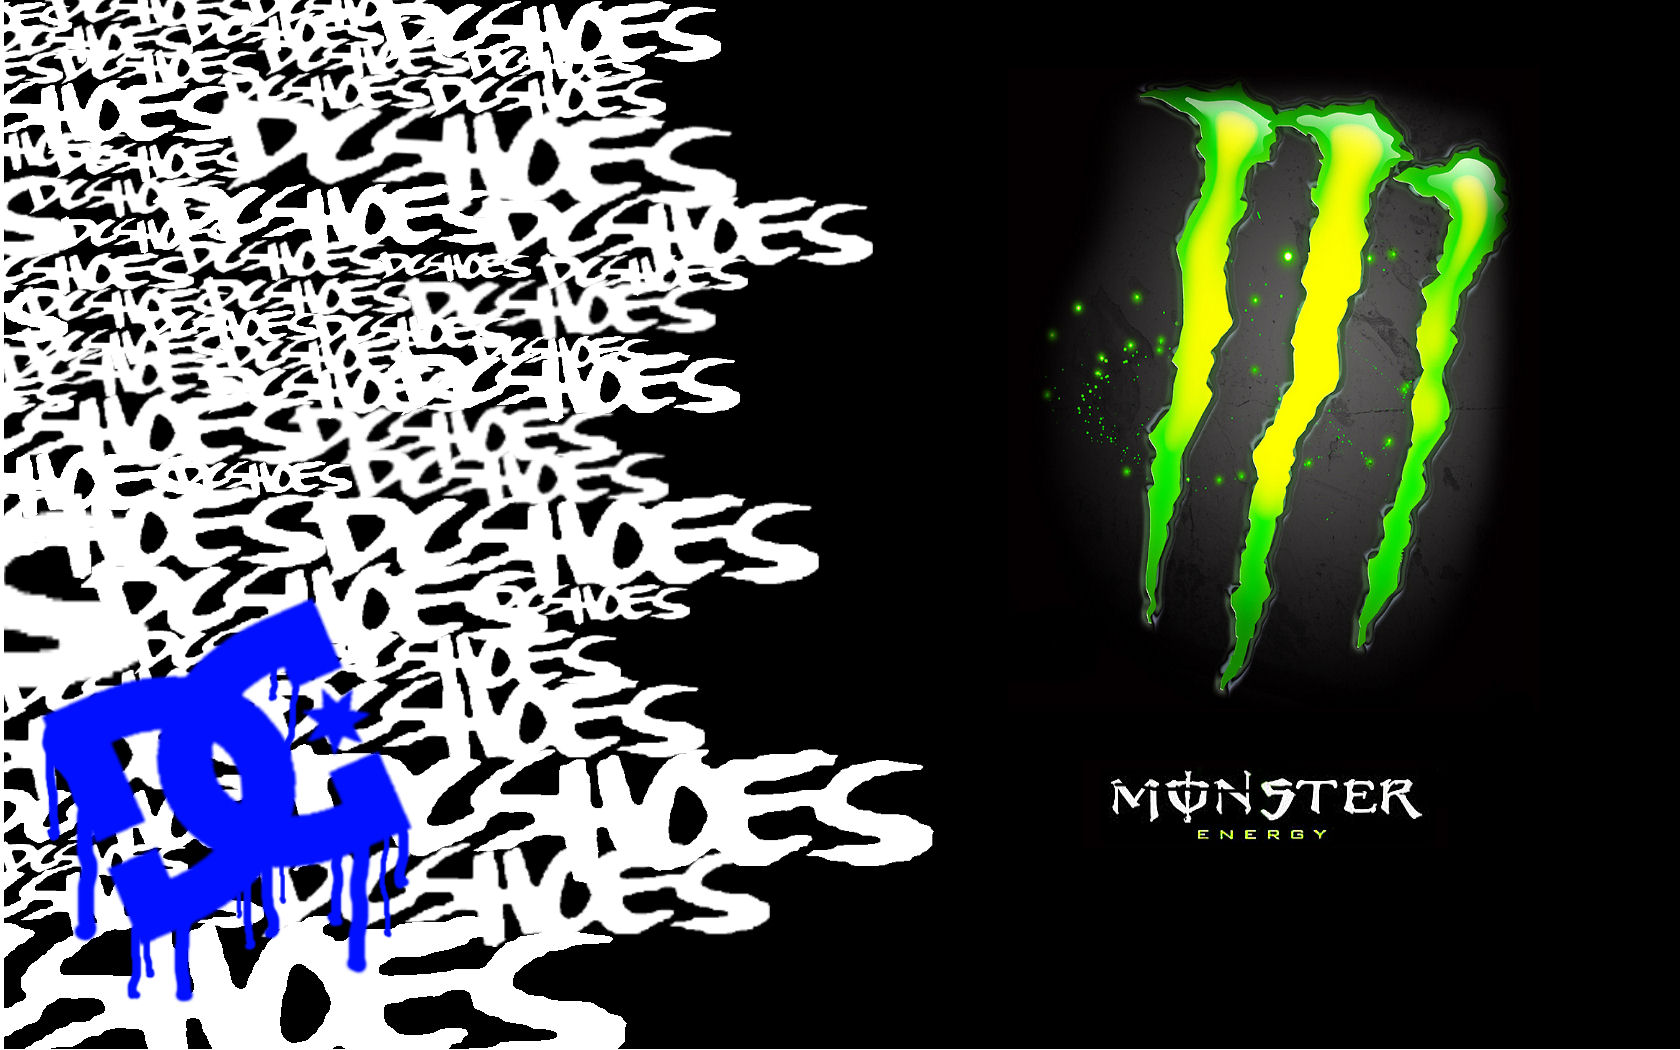 Monster DC Shoes Wallpaper wallpapers Monster DC Shoes Wallpaper 1680x1050